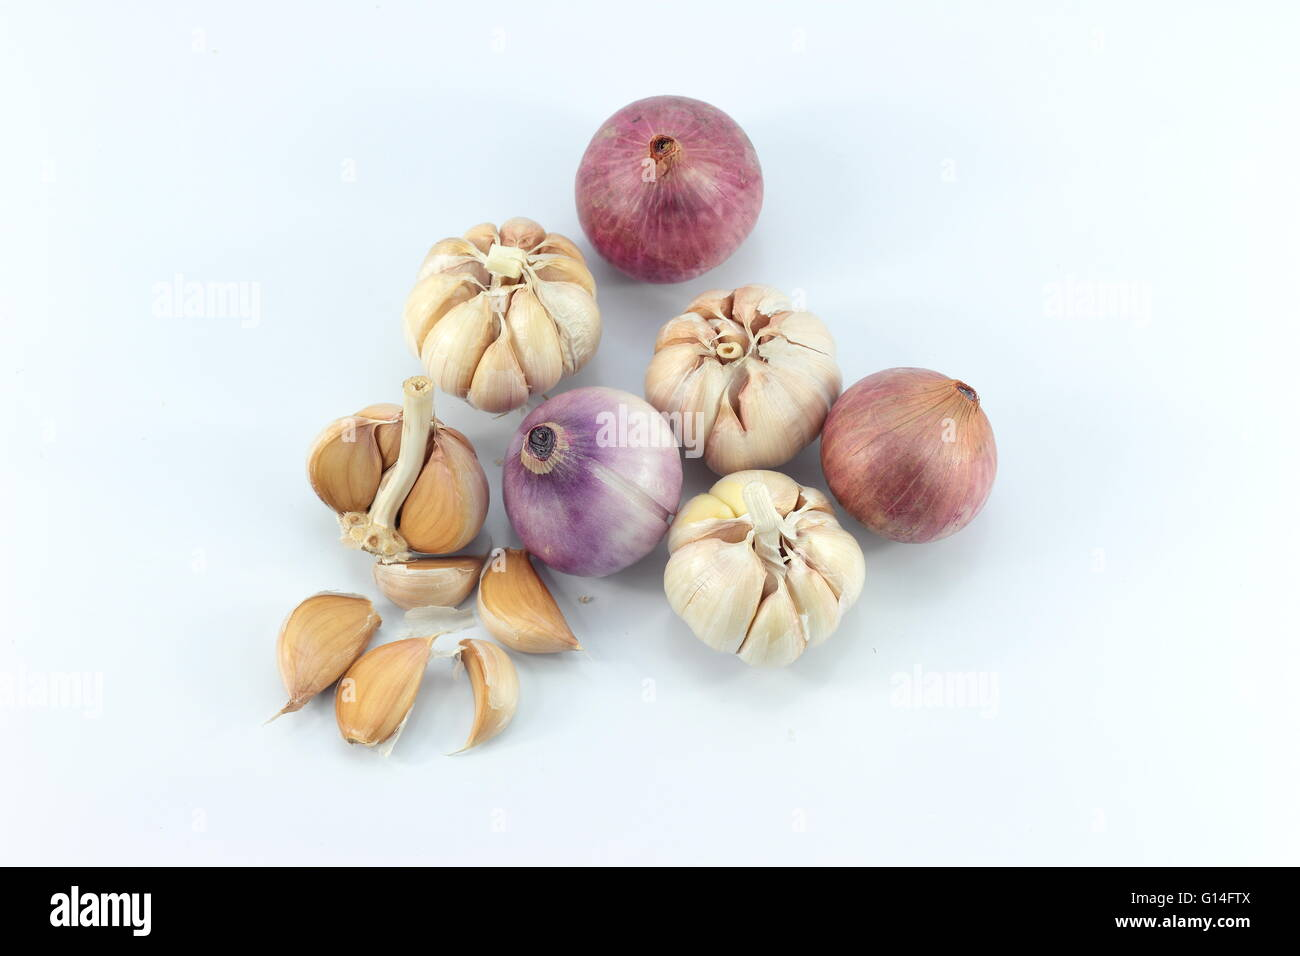 shallots and garlic  on white background - Stock Image